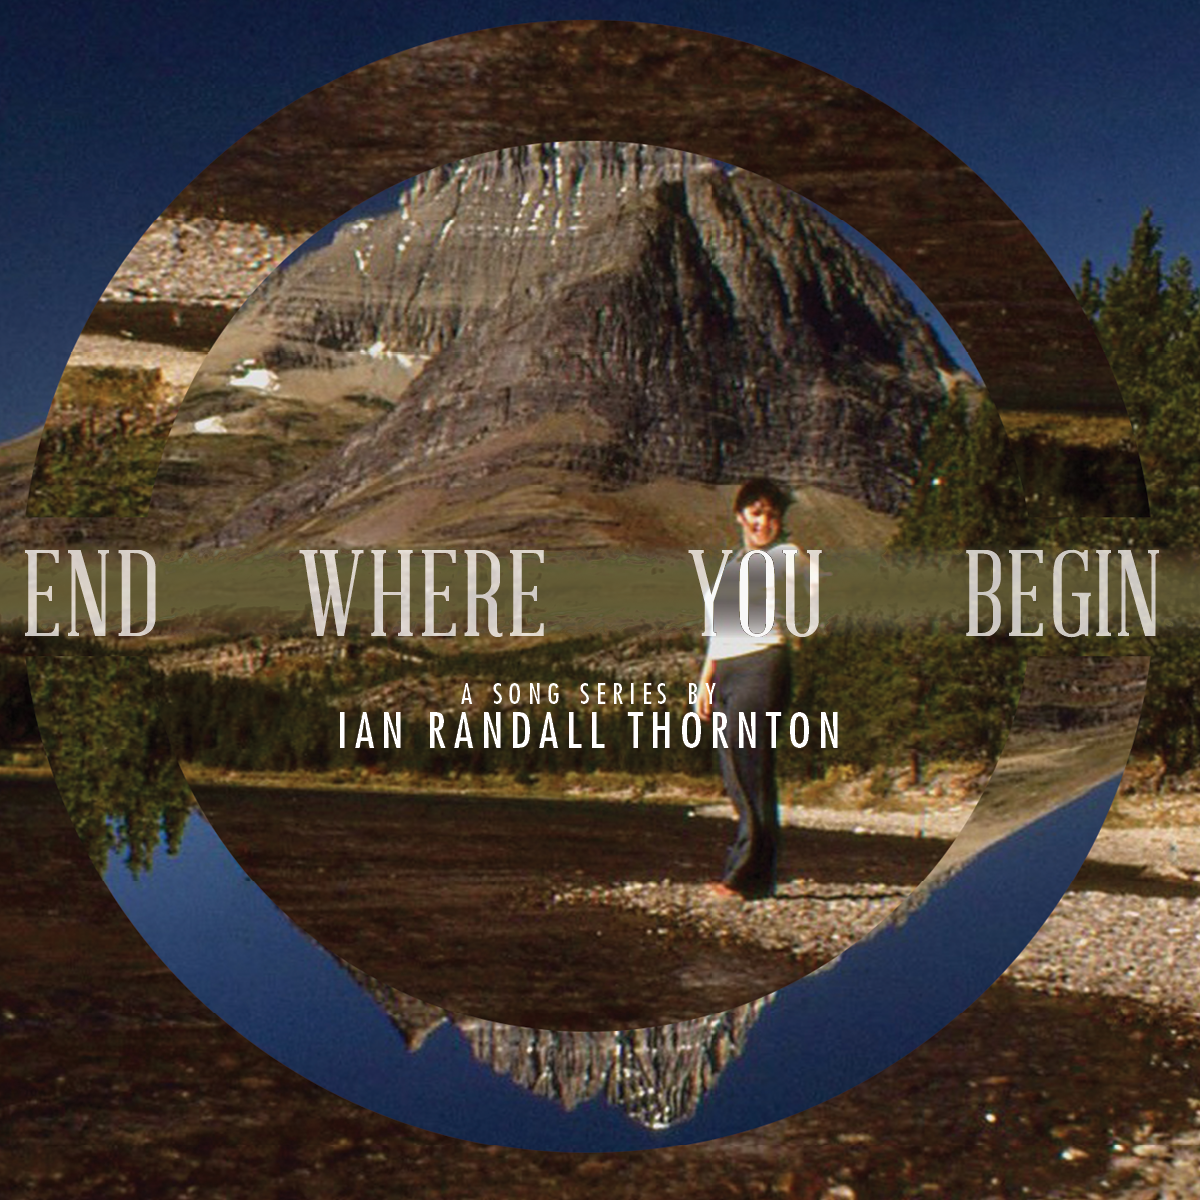 END WHERE YOU BEGIN  Ian Randall Thornton—2014